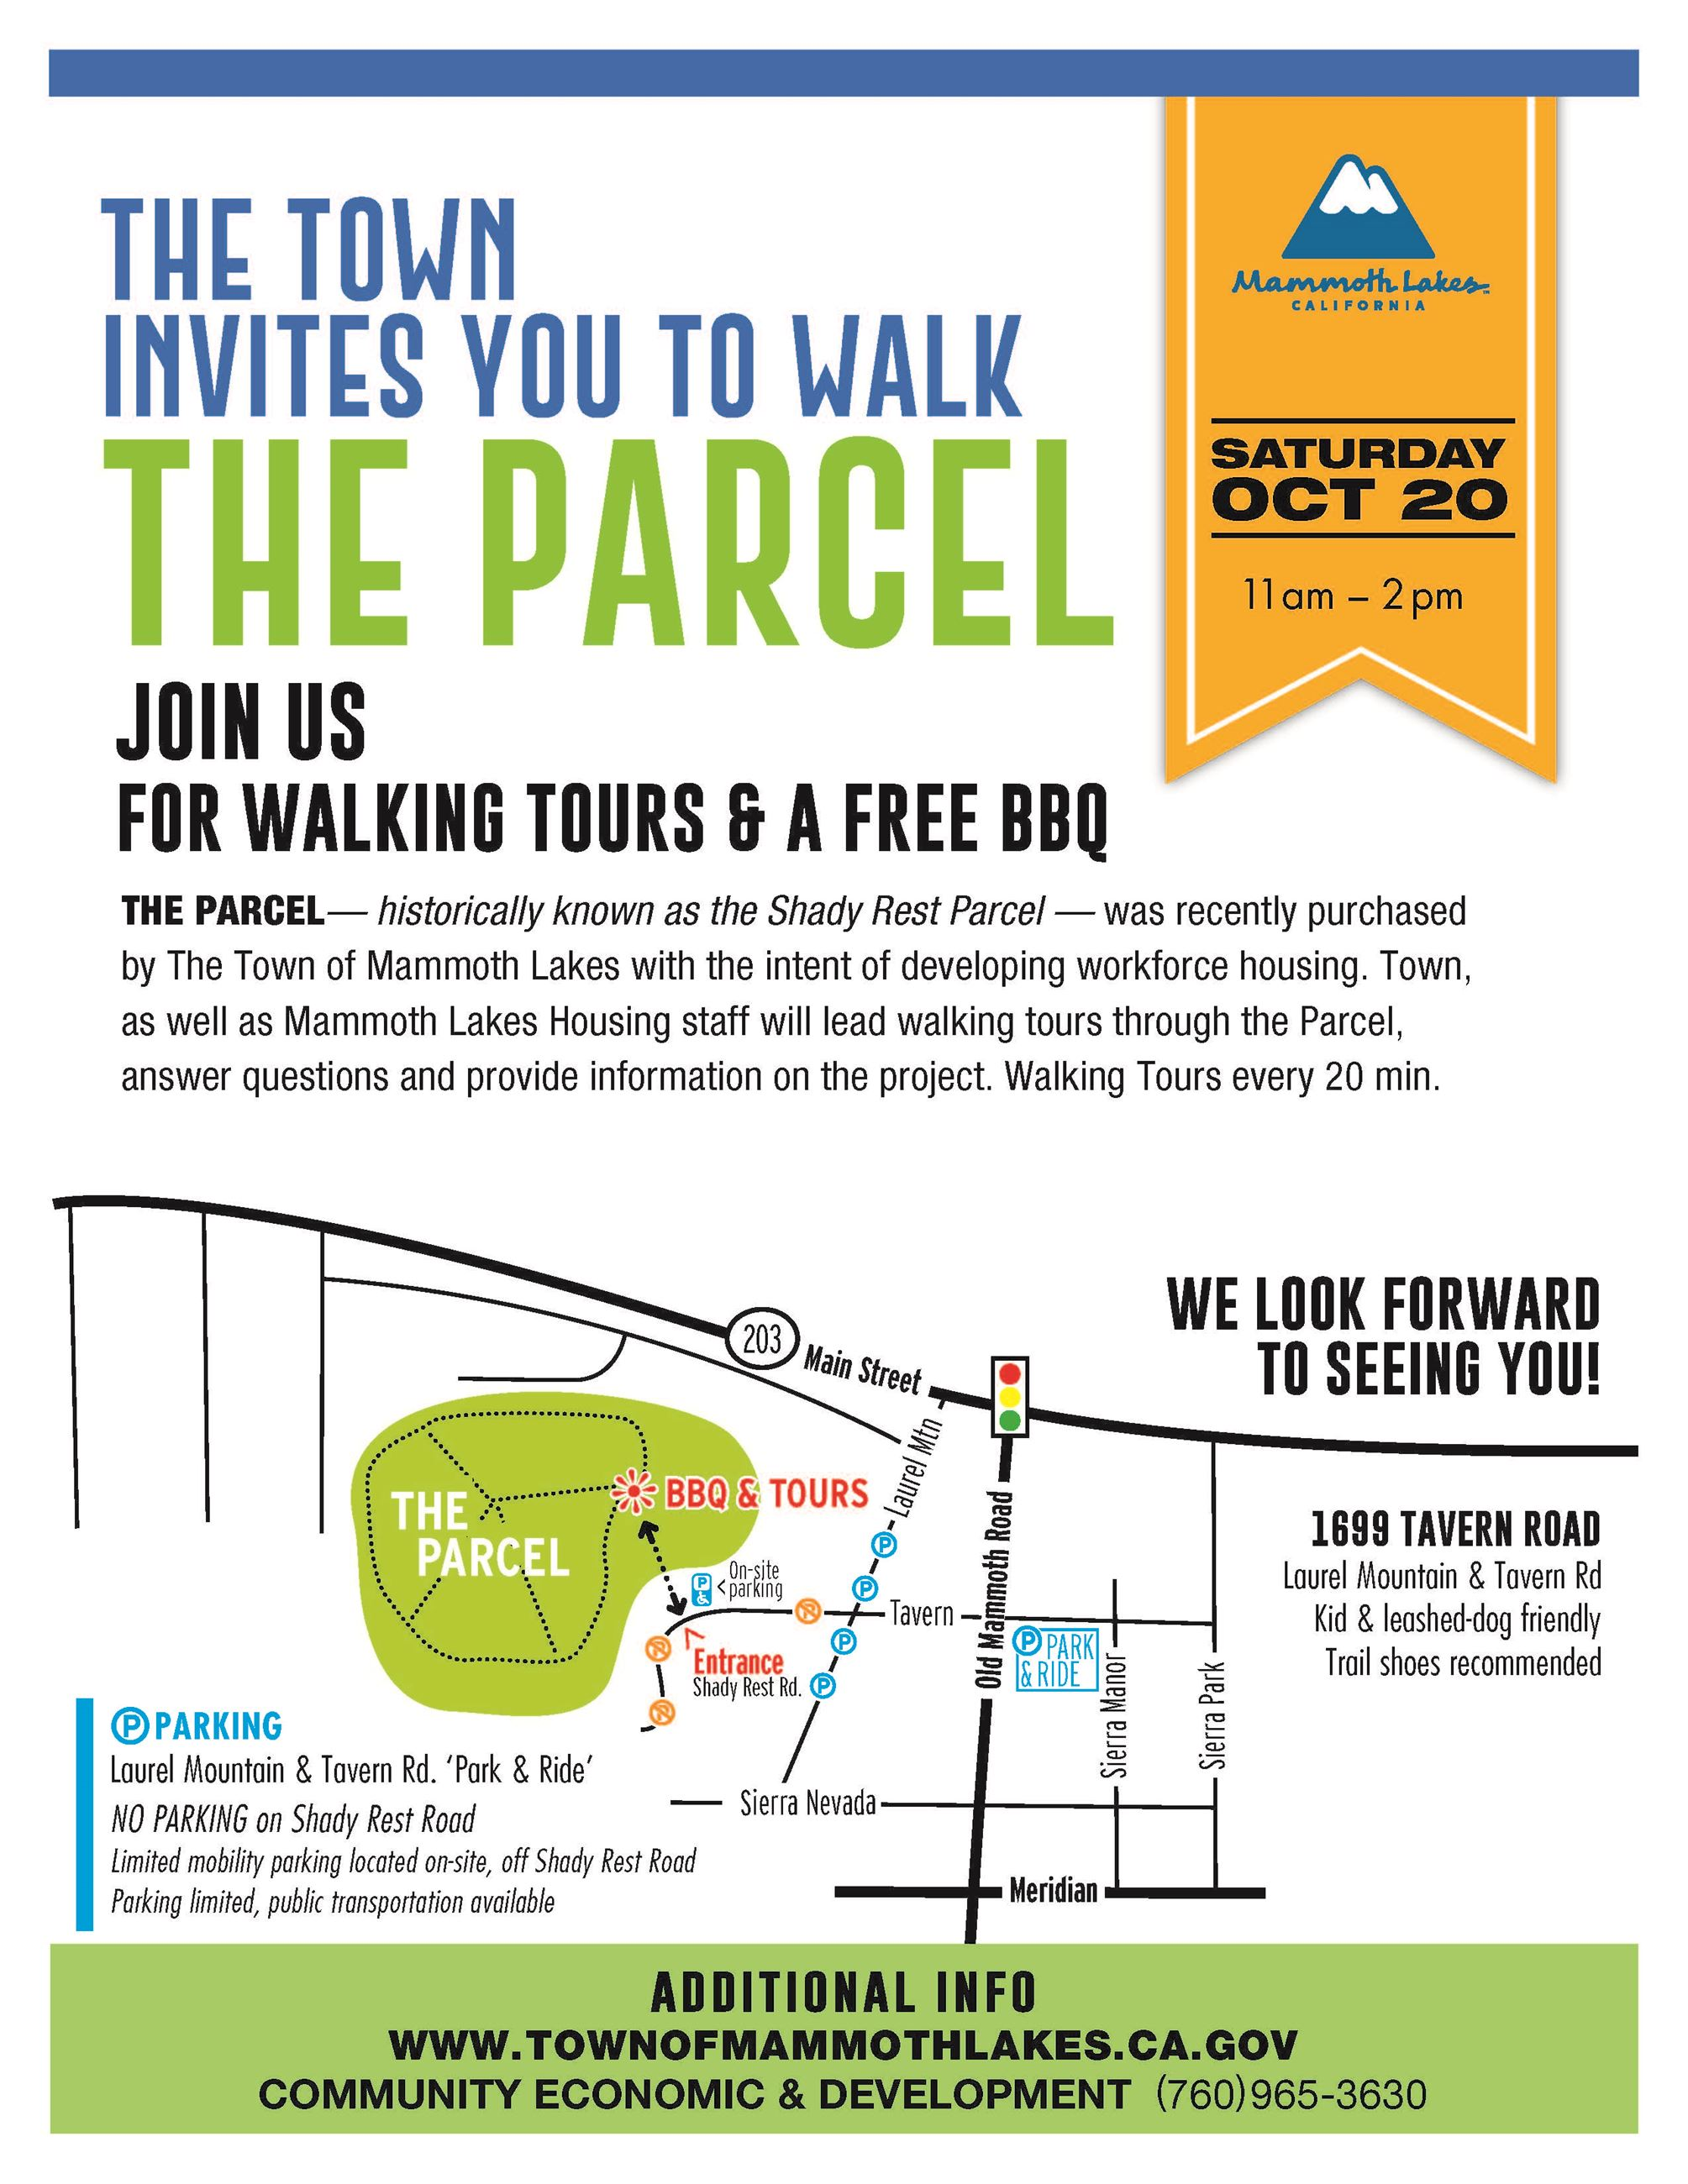 TOML_FLYER_WALK THE PARCEL_FINAL_Page_2 Opens in new window